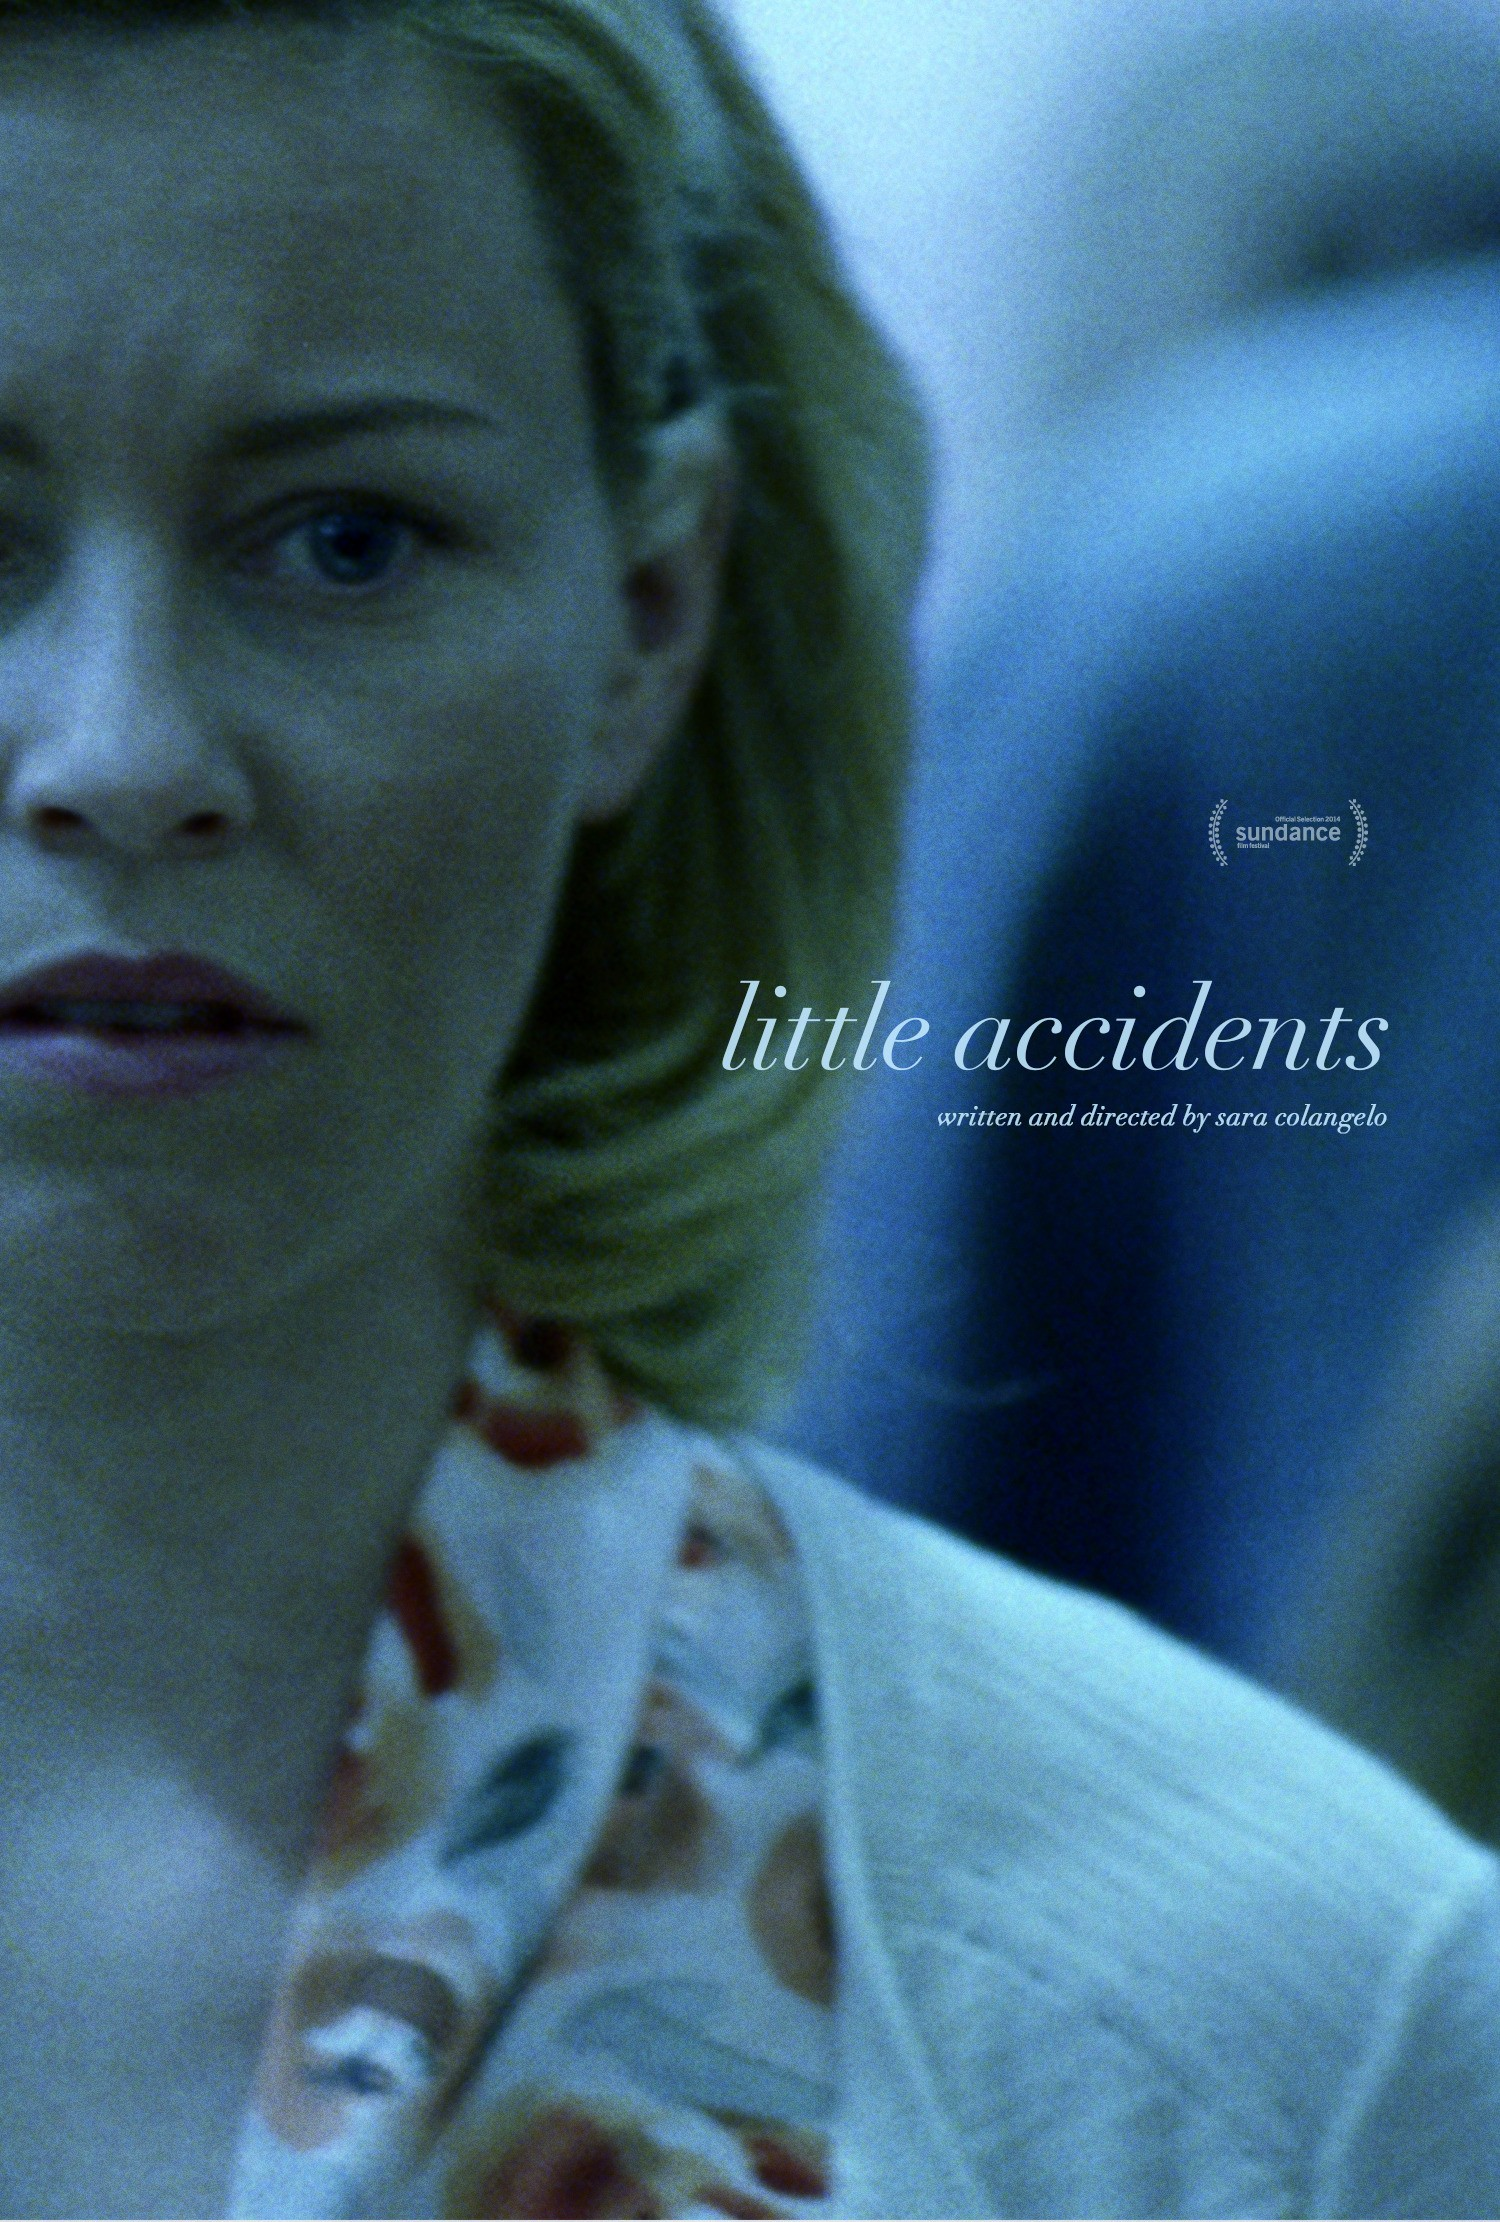 LITTLE ACCIDENTS-Official Poster Banner PROMO POSTER XXLG-28JANEIRO2014-02